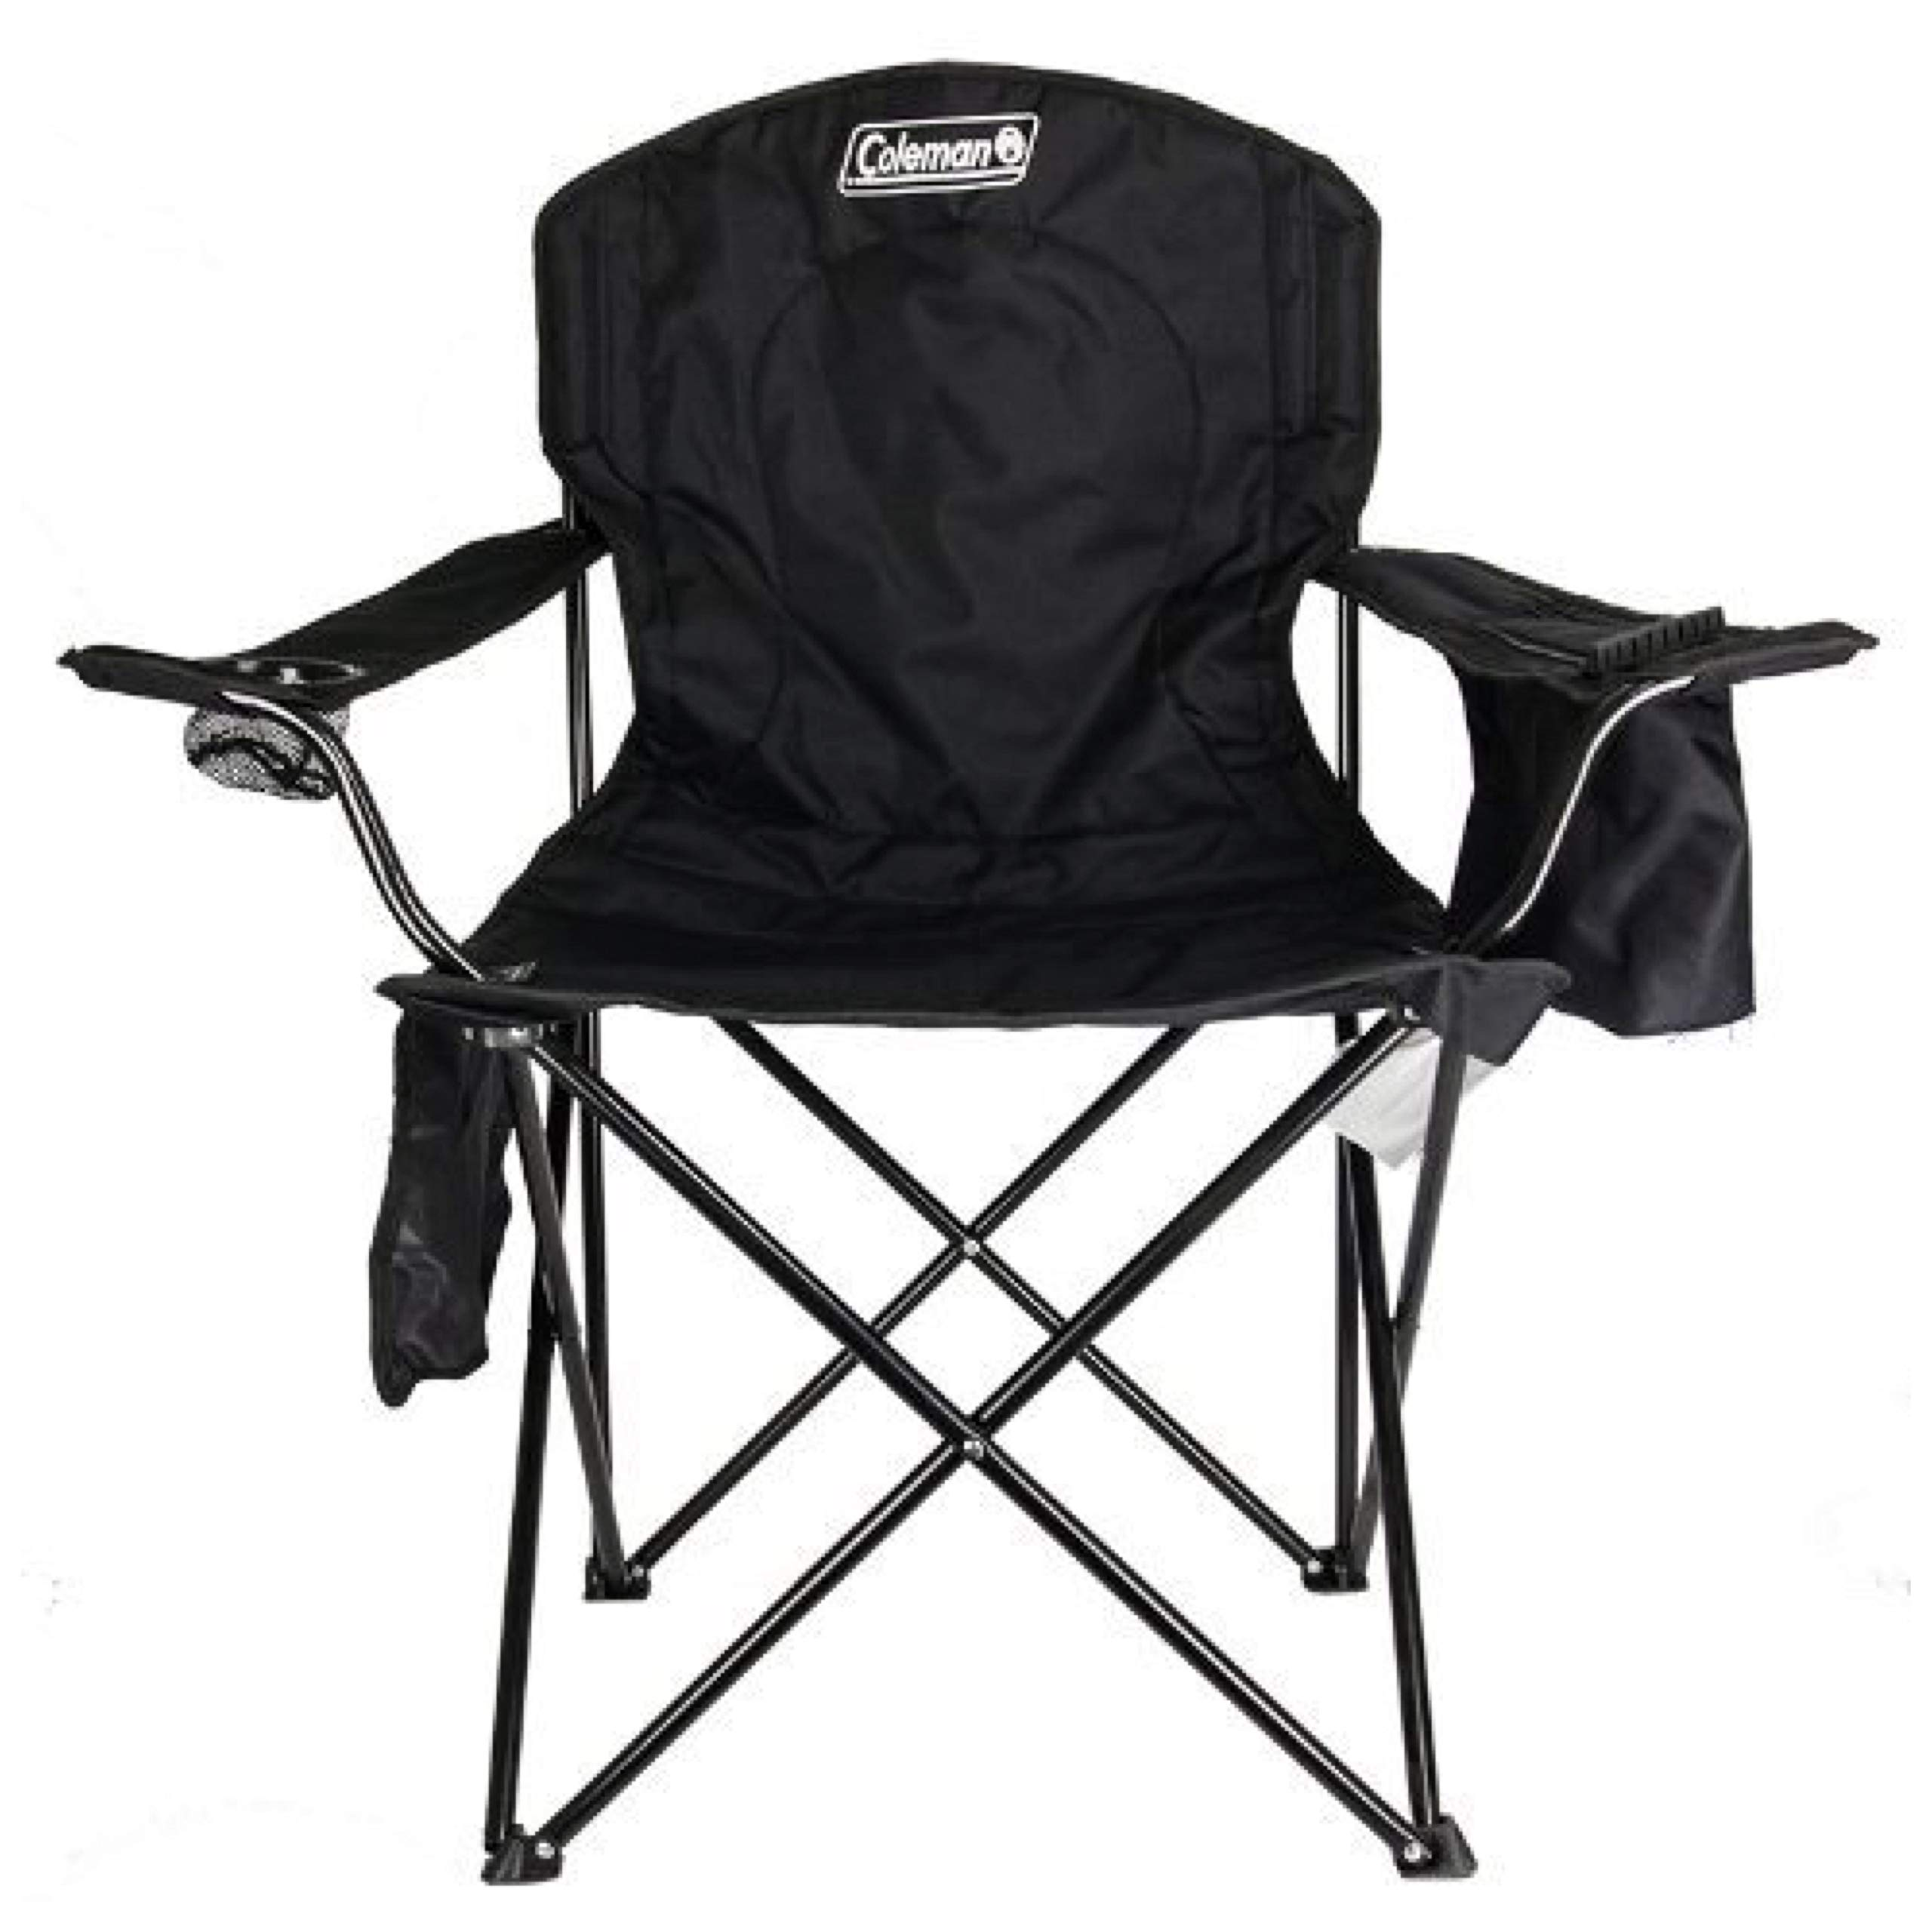 Coleman Cooler Portable Camping Chair